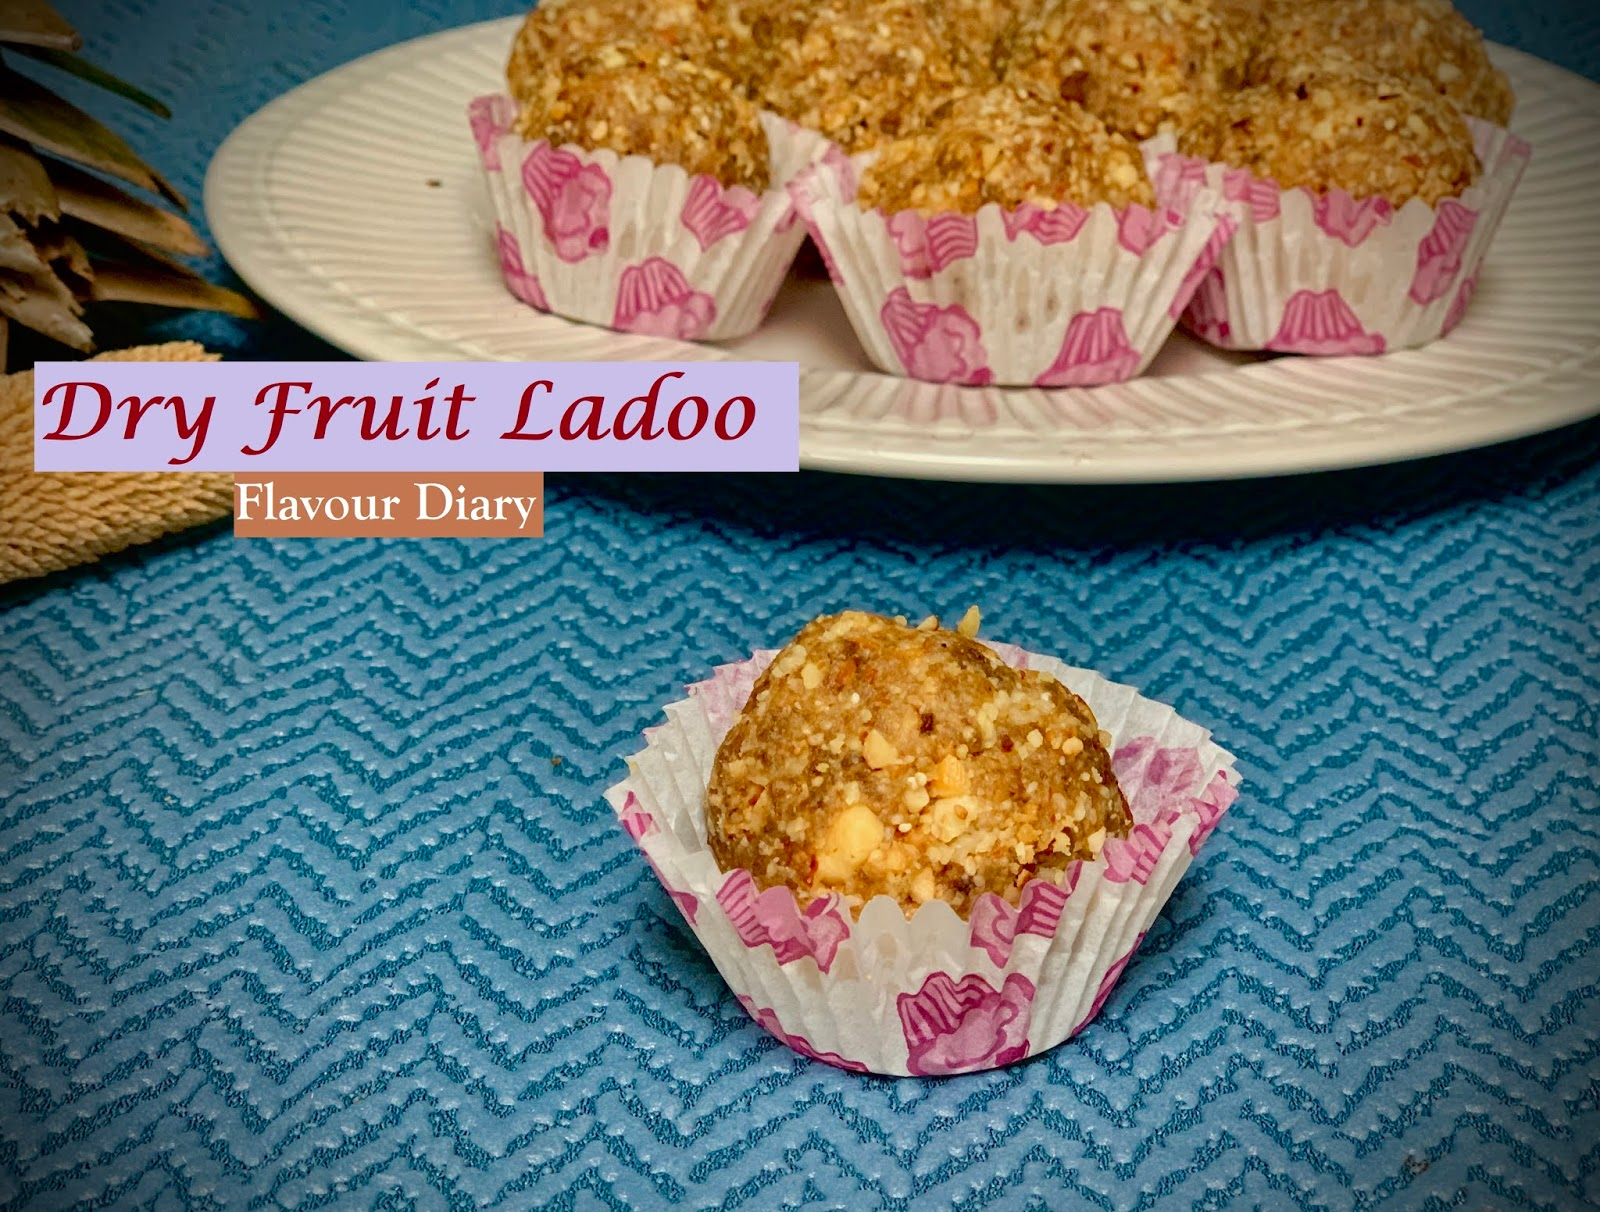 Healthy Dry Fruit Ladoo No sugar No Jaggery Gluten Free recipes Edible gifts FlavourDiary